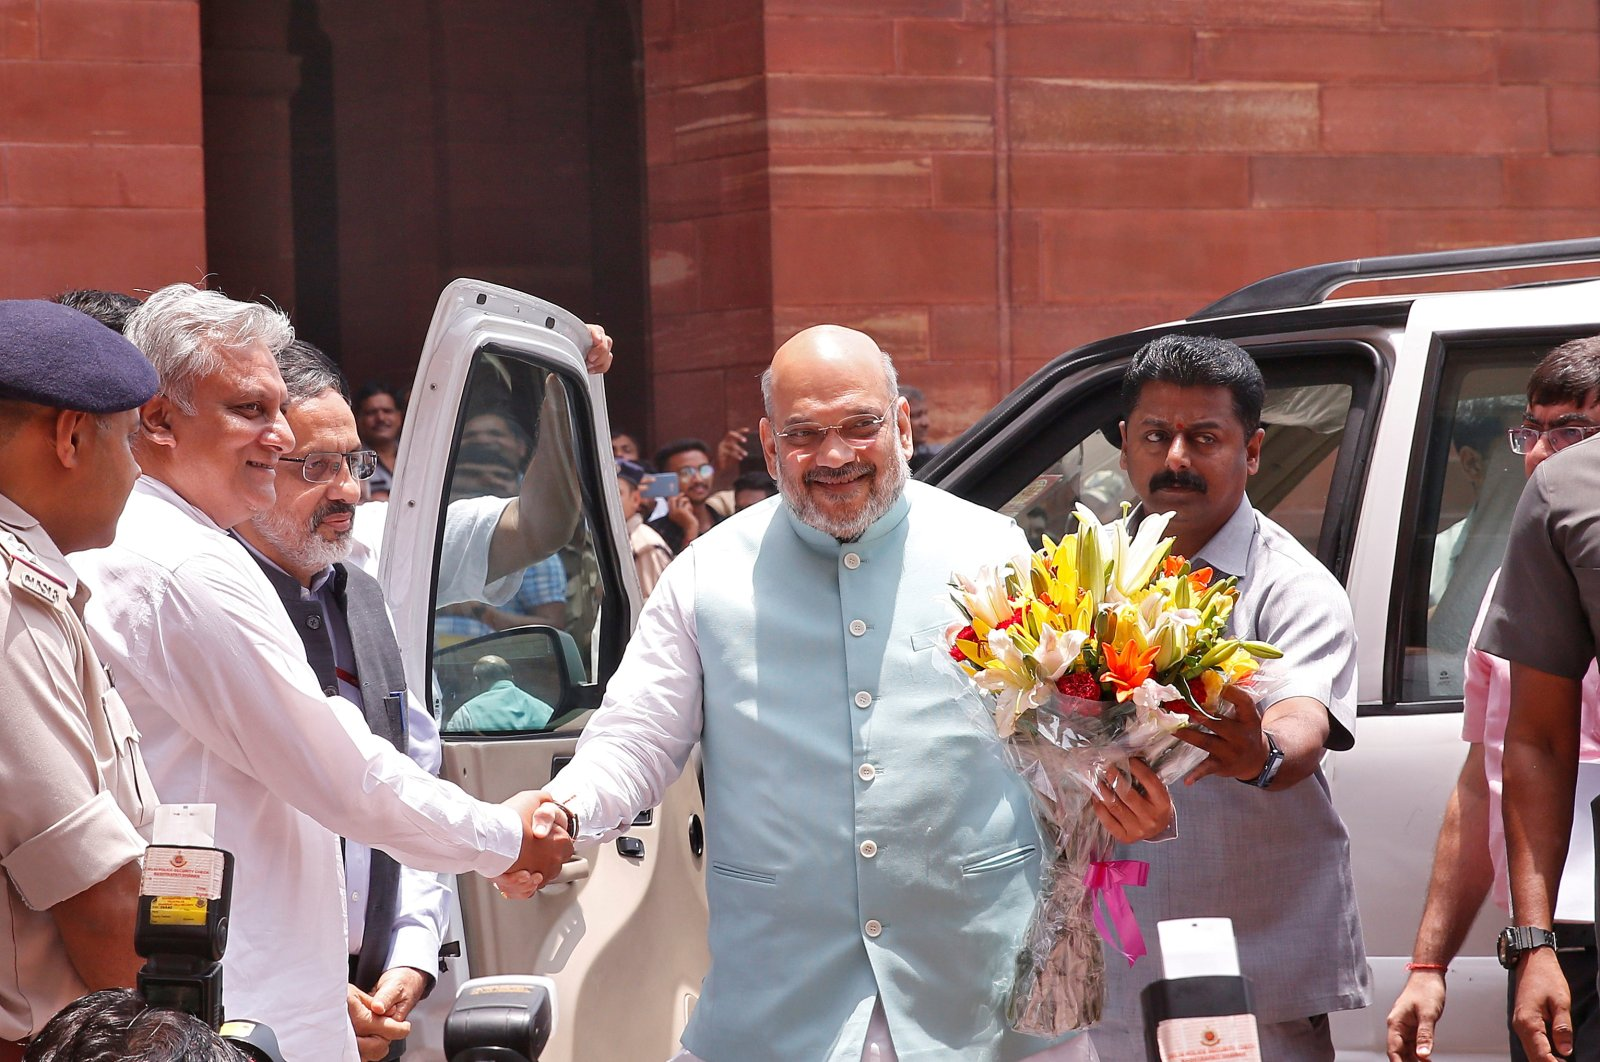 India's newly appointed Home Minister Amit Shah receives a flower bouquet upon his arrival at the home ministry in New Delhi, India, June 1, 2019. (REUTERS Photo)